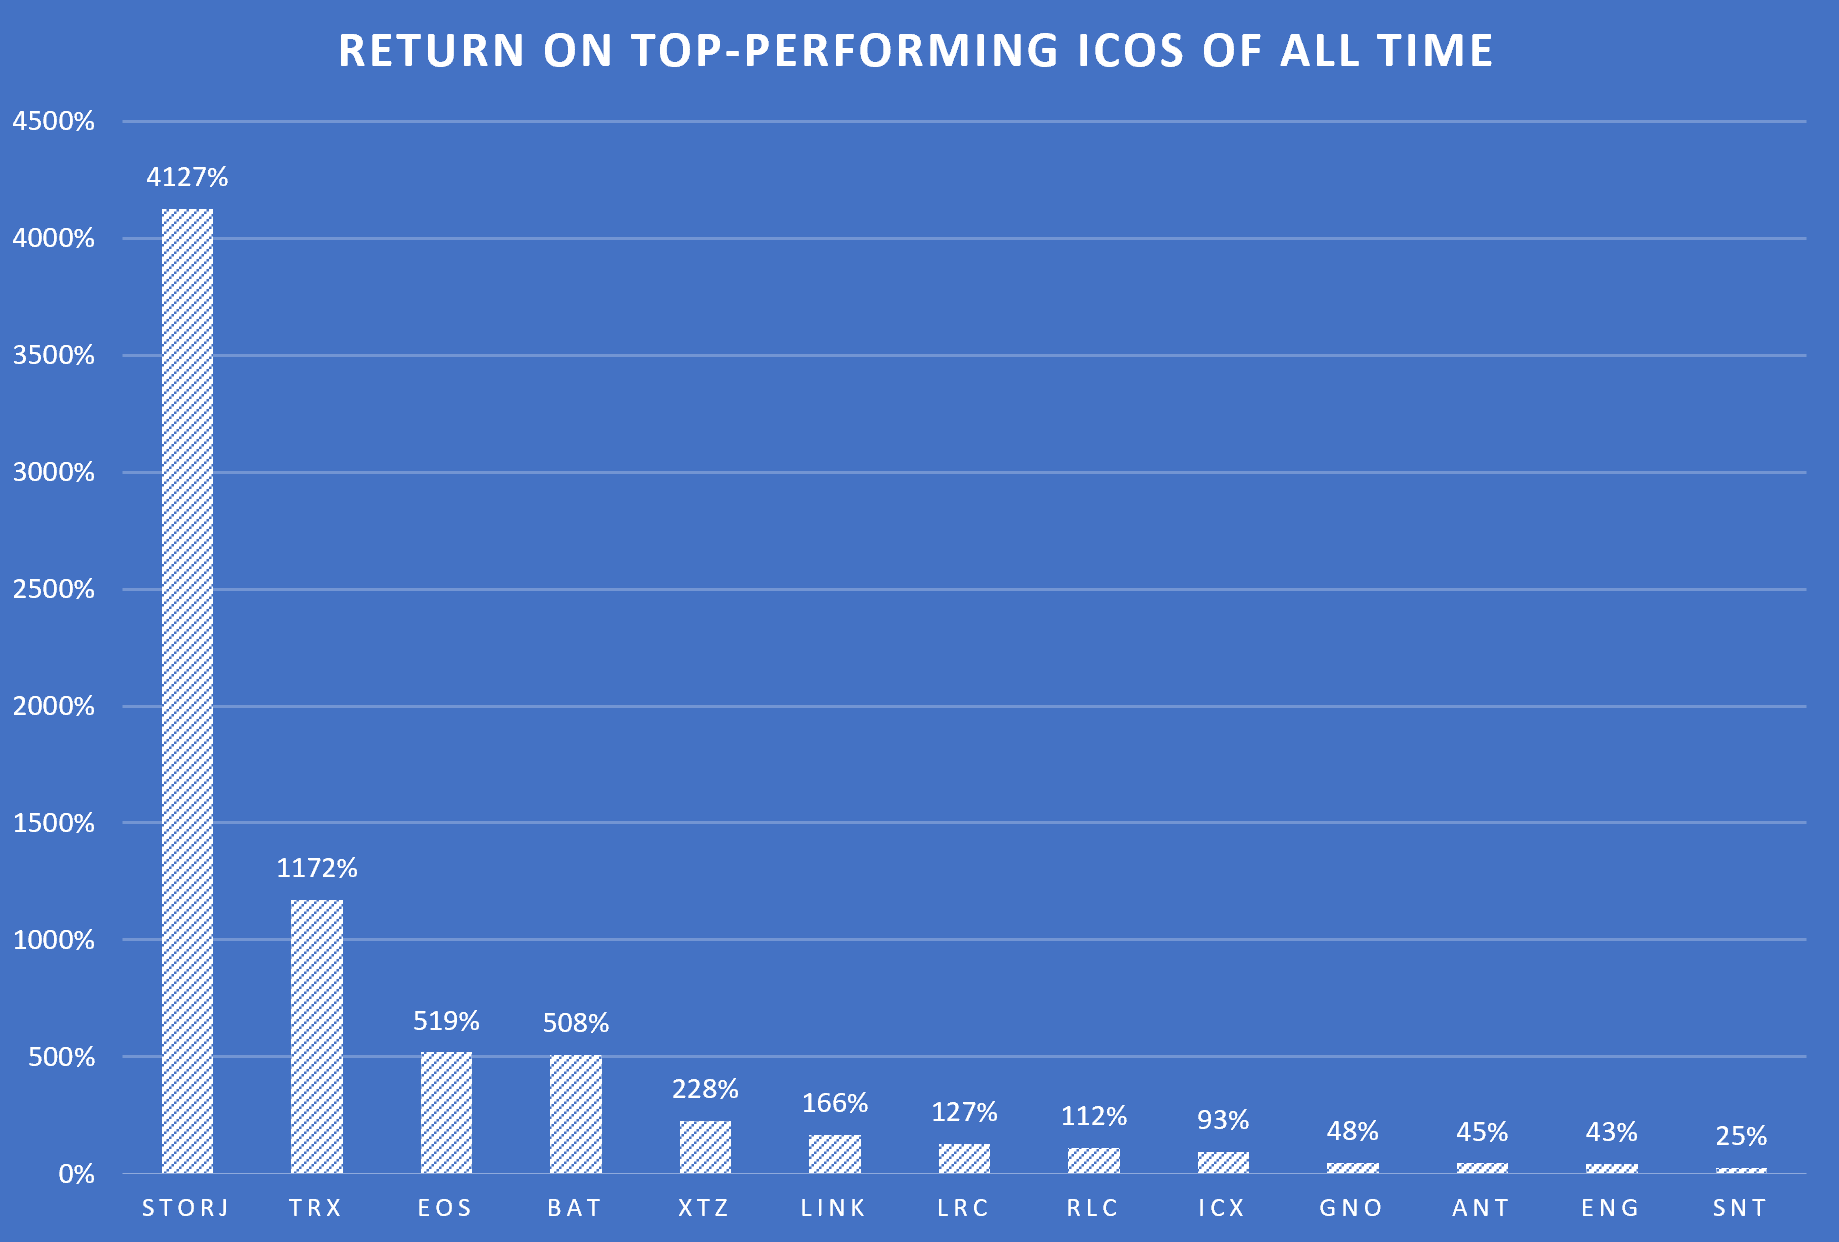 Top-returning ICOs of all time